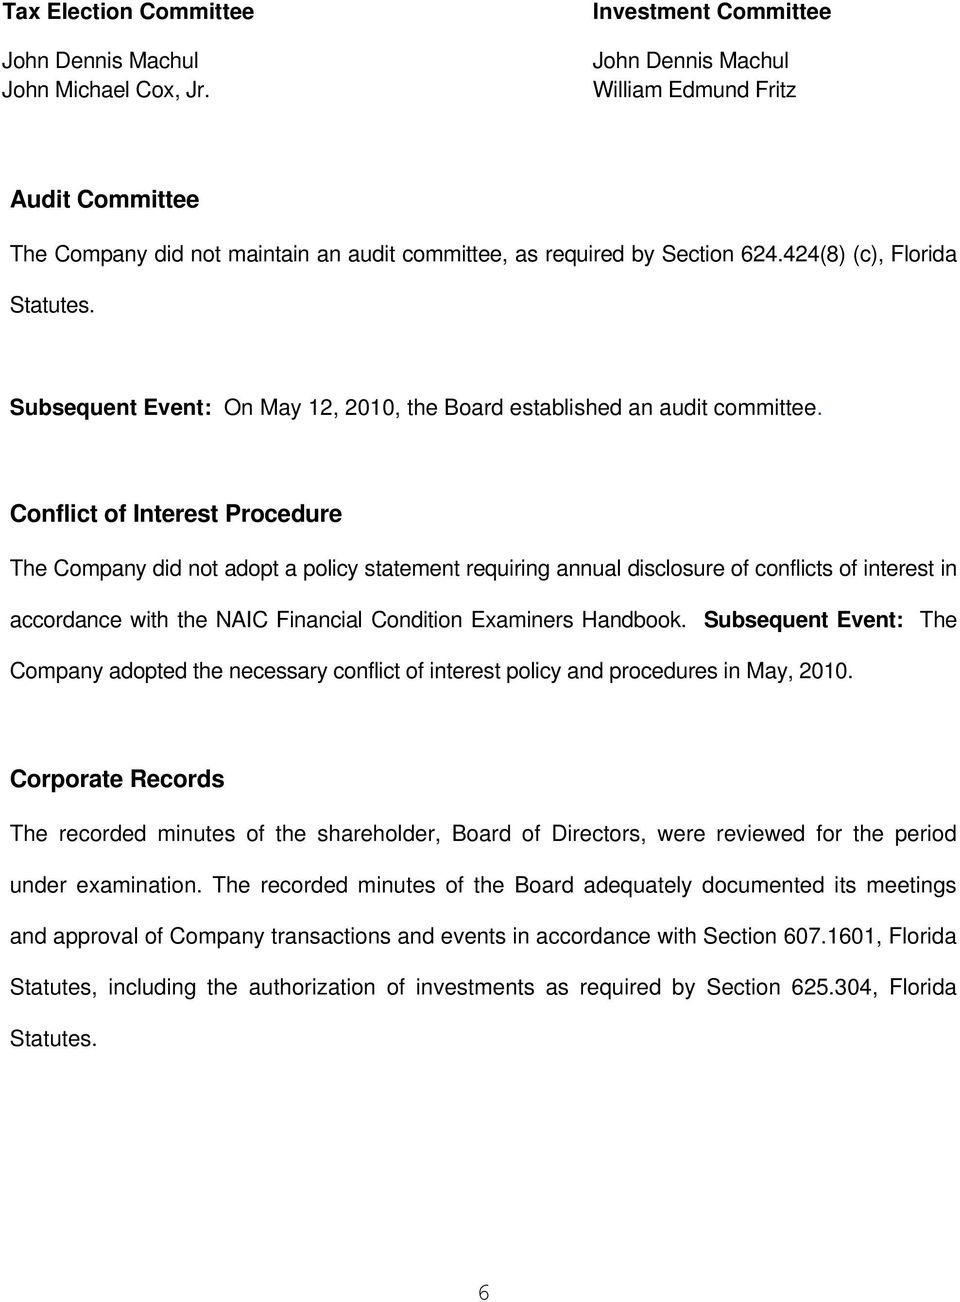 Subsequent Event: On May 12, 2010, the Board established an audit committee.